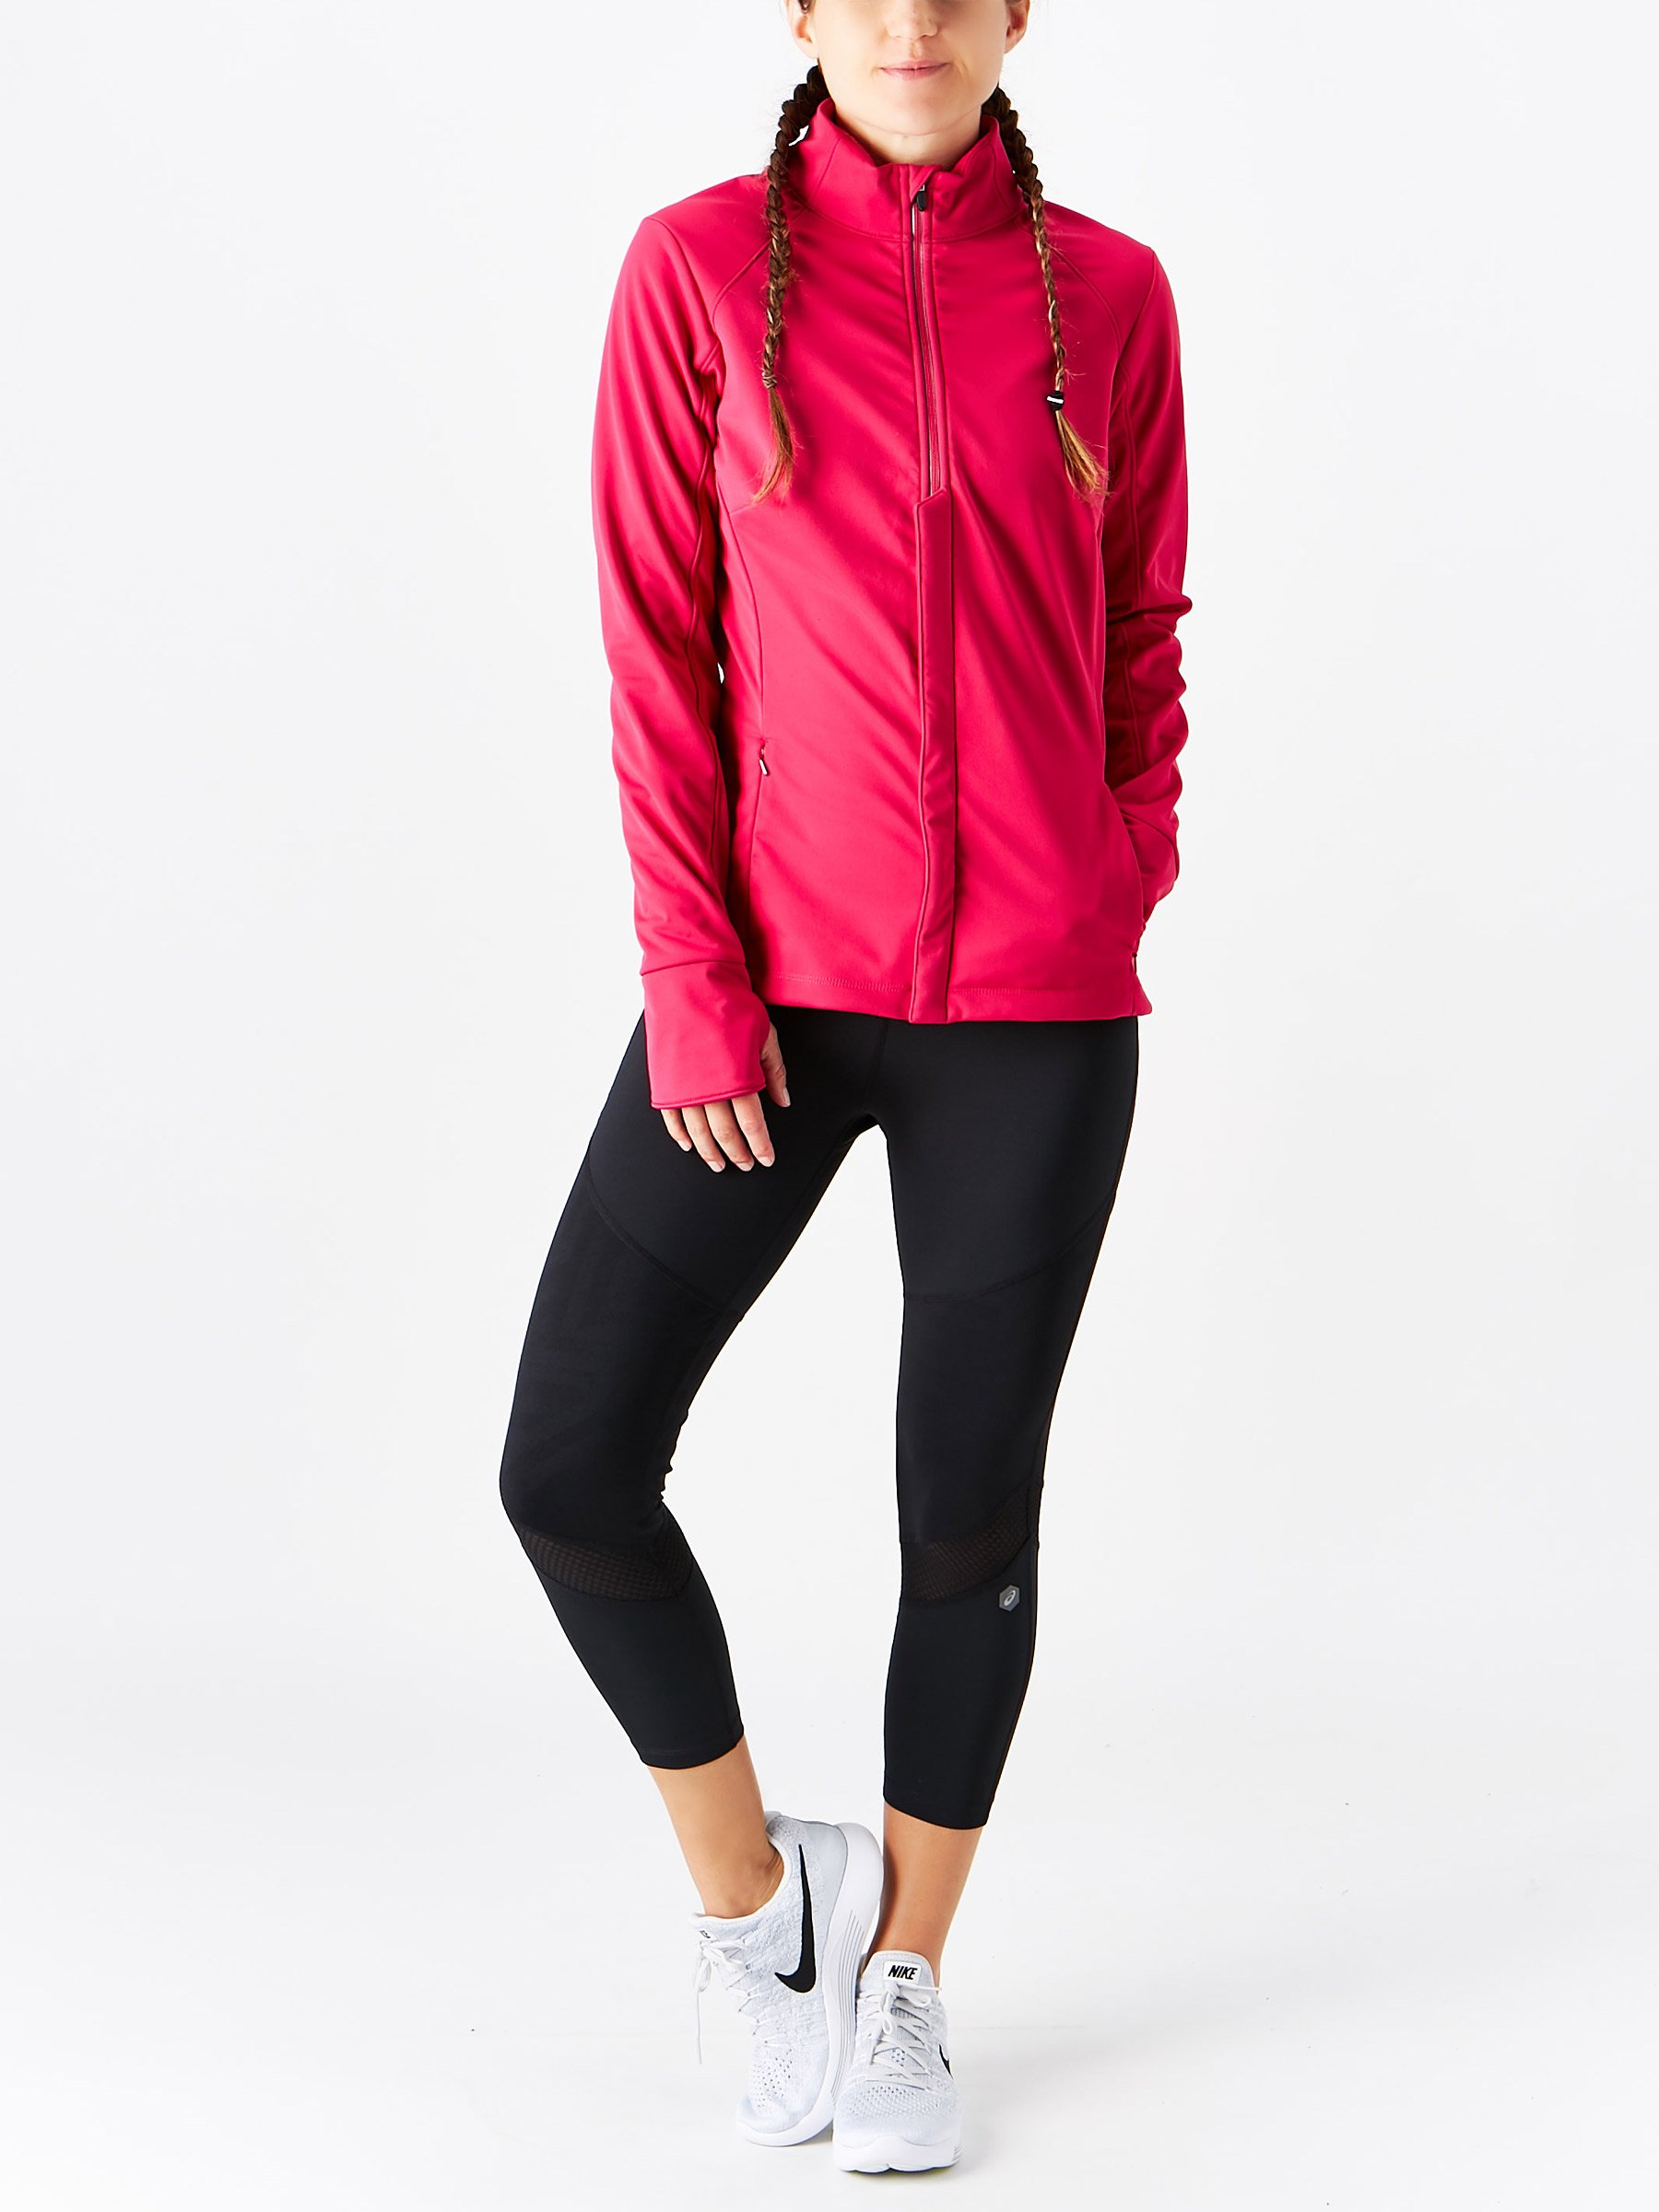 ASICS Womens Softshell Jacket, Performance Black, Small by ASICS (Image #8)